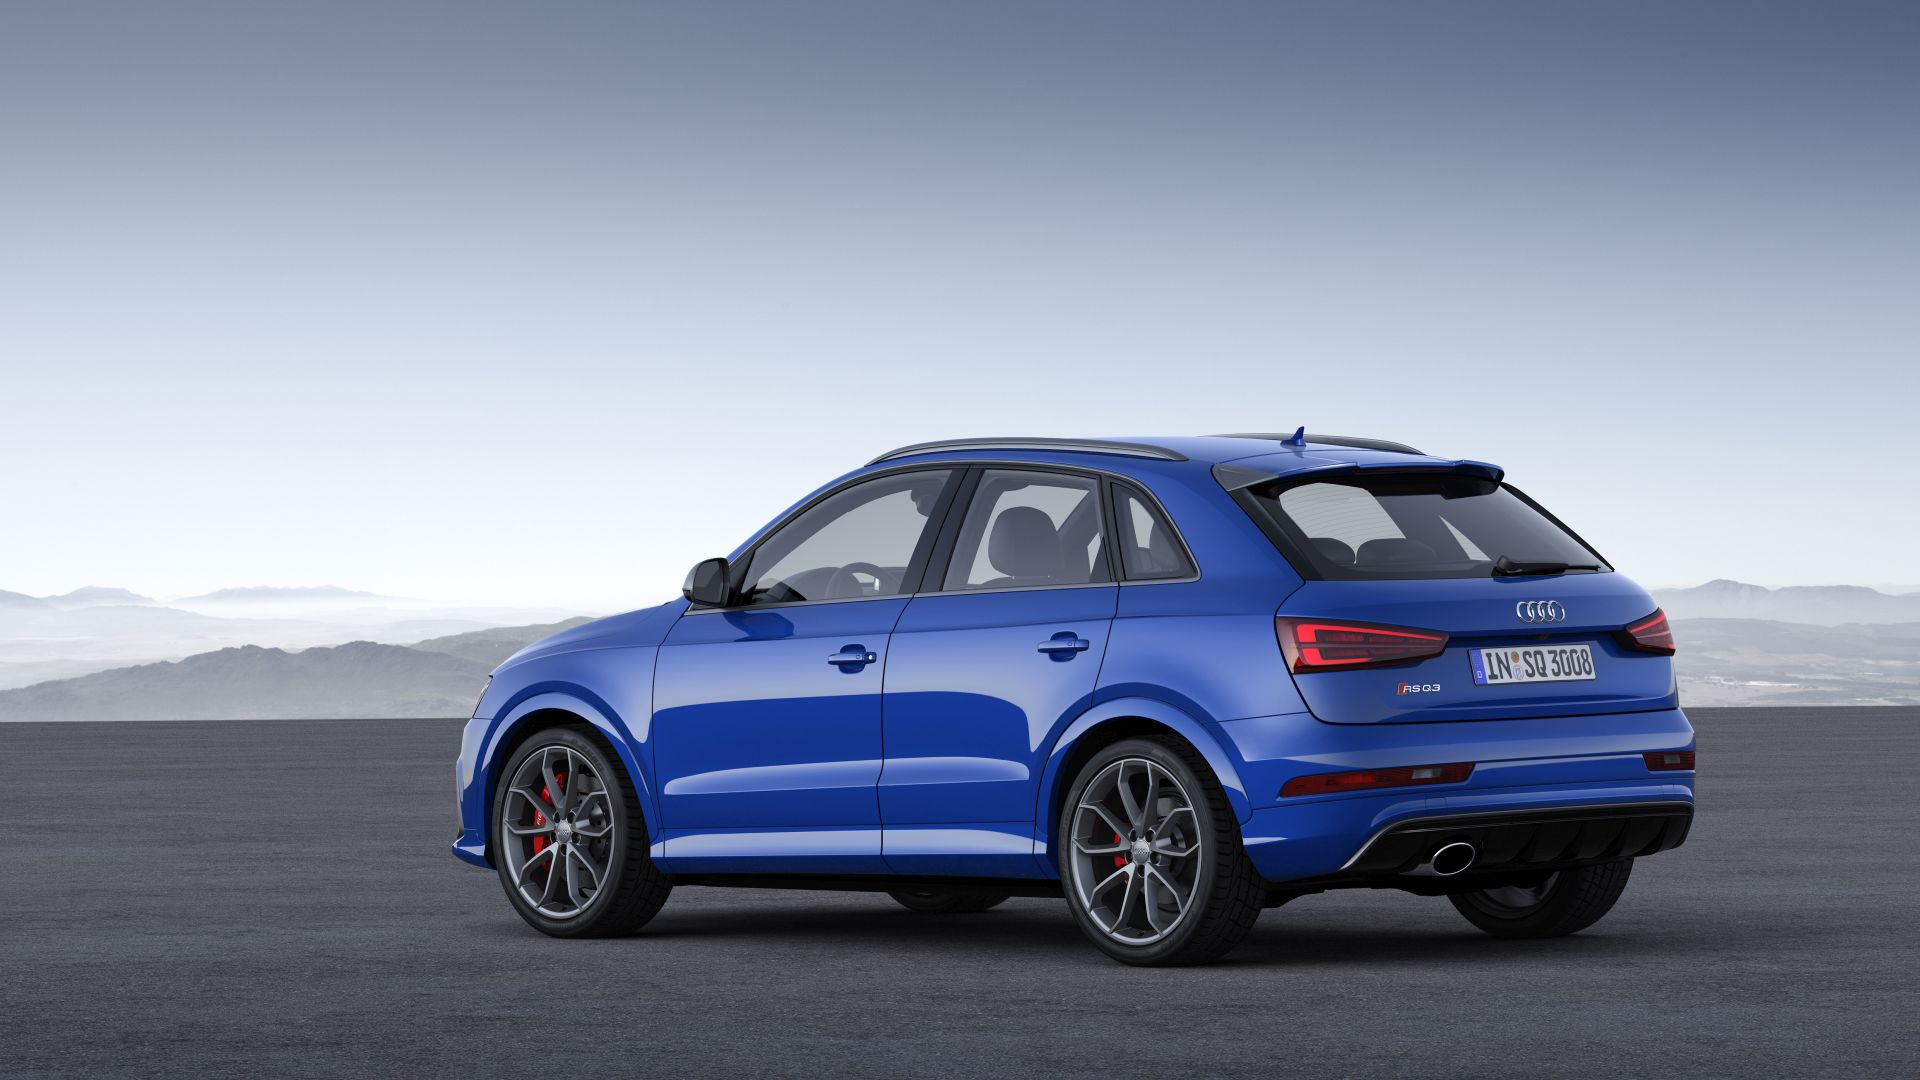 Audi Rs Q3 Performance Ubi Testet